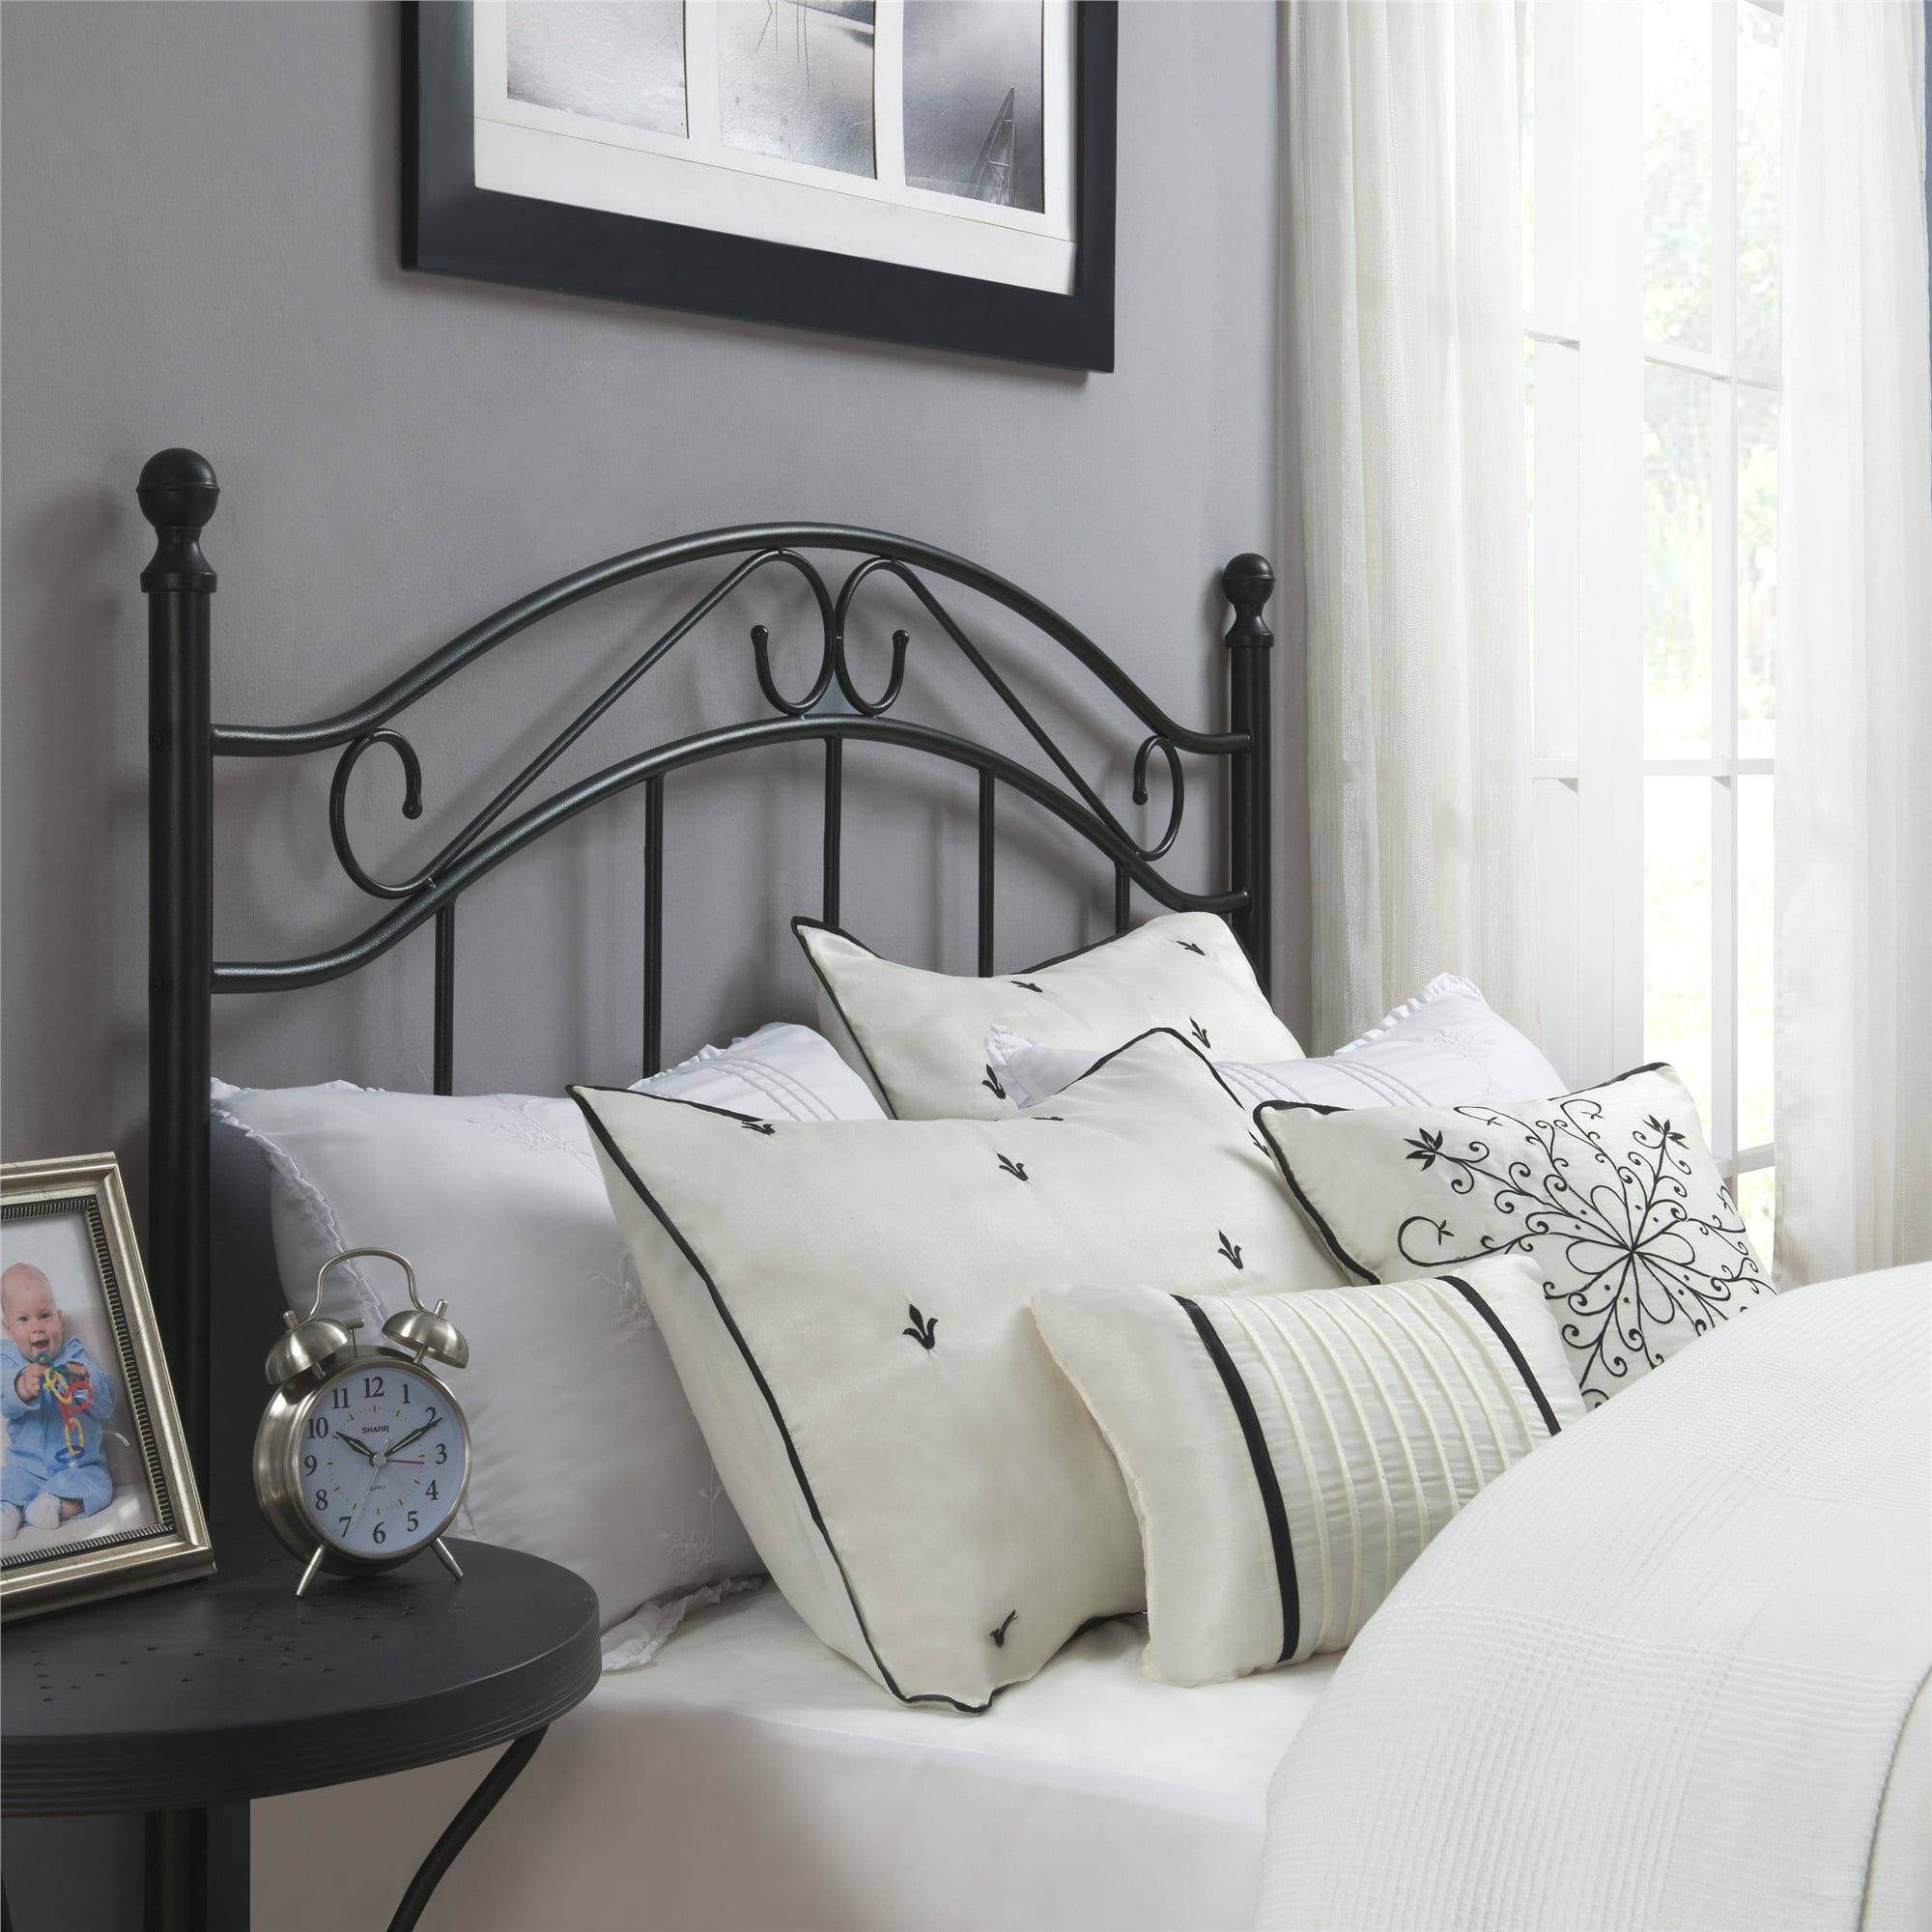 Terrific Mainstays Full Queen Metal Headboard Multiple Colors Beutiful Home Inspiration Truamahrainfo